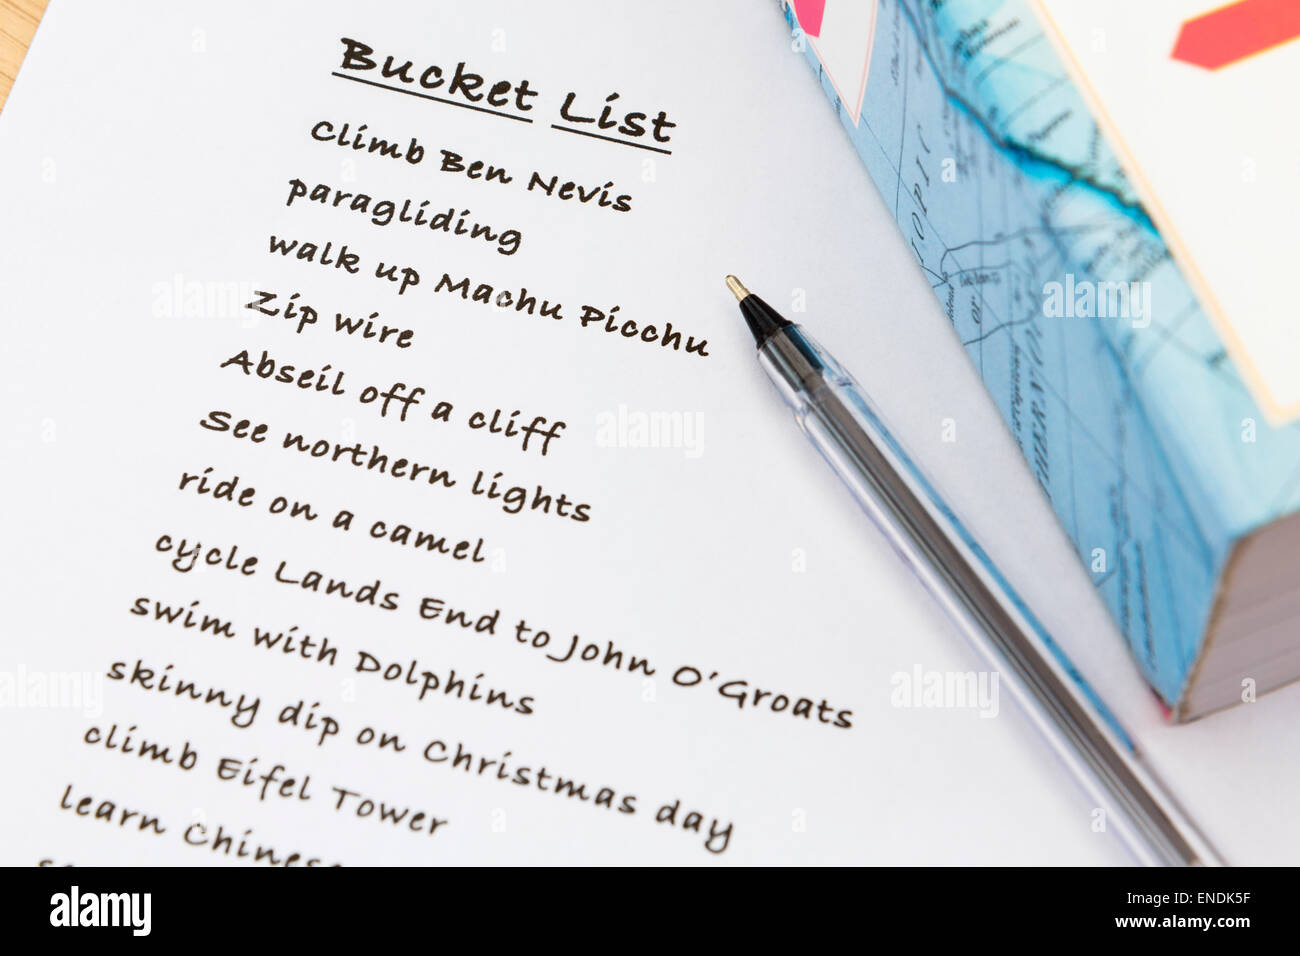 An English person's to do list written on white note paper with a black pen and travel guide book. England UK. - Stock Image